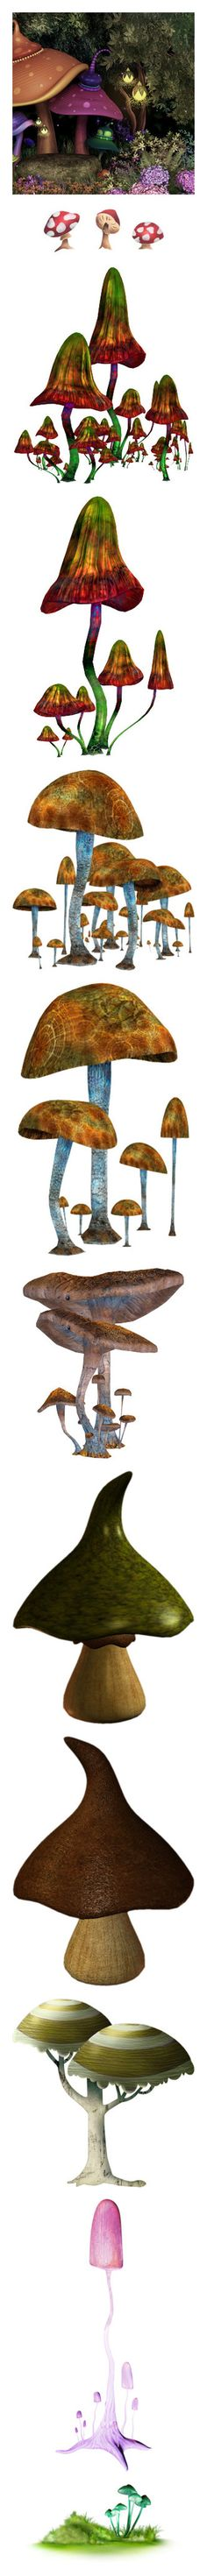 """Mushrooms 00 (Under Construction)"" by kelsjax ❤ liked on Polyvore featuring art background, backgrounds, mushrooms, illustrations, nature, trees, plants, alice, pictures and wonderland"